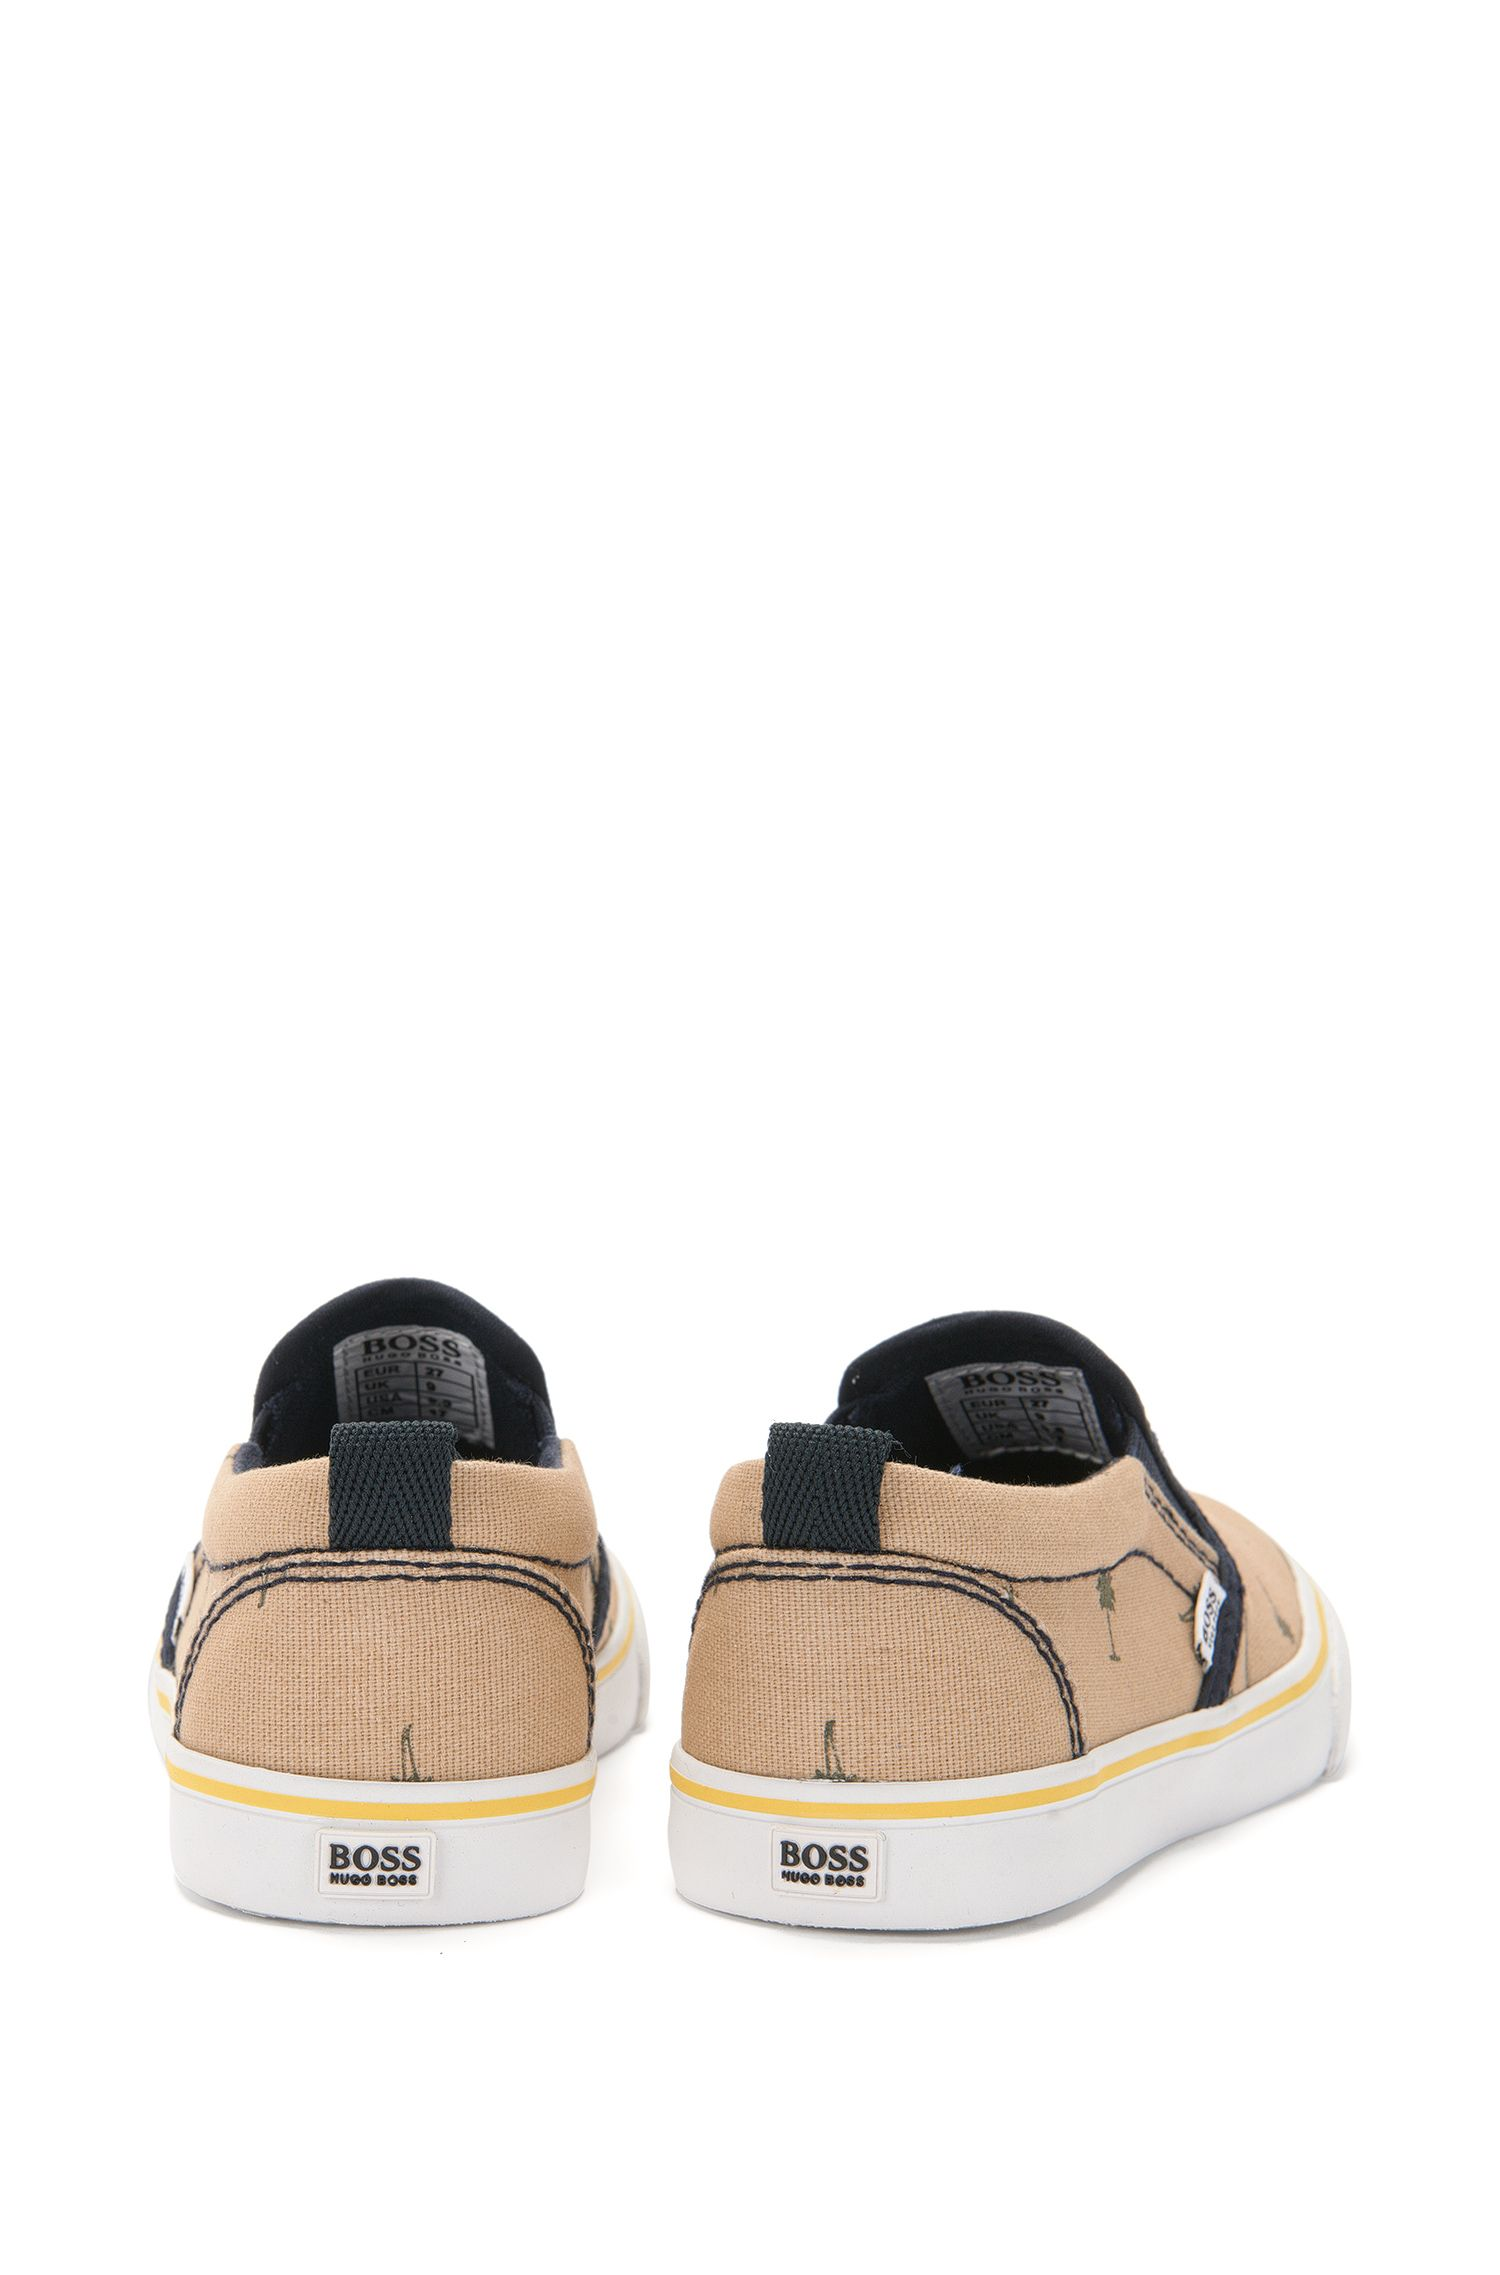 Kids-Sneakers aus Canvas mit Allover-Muster: 'J29117'